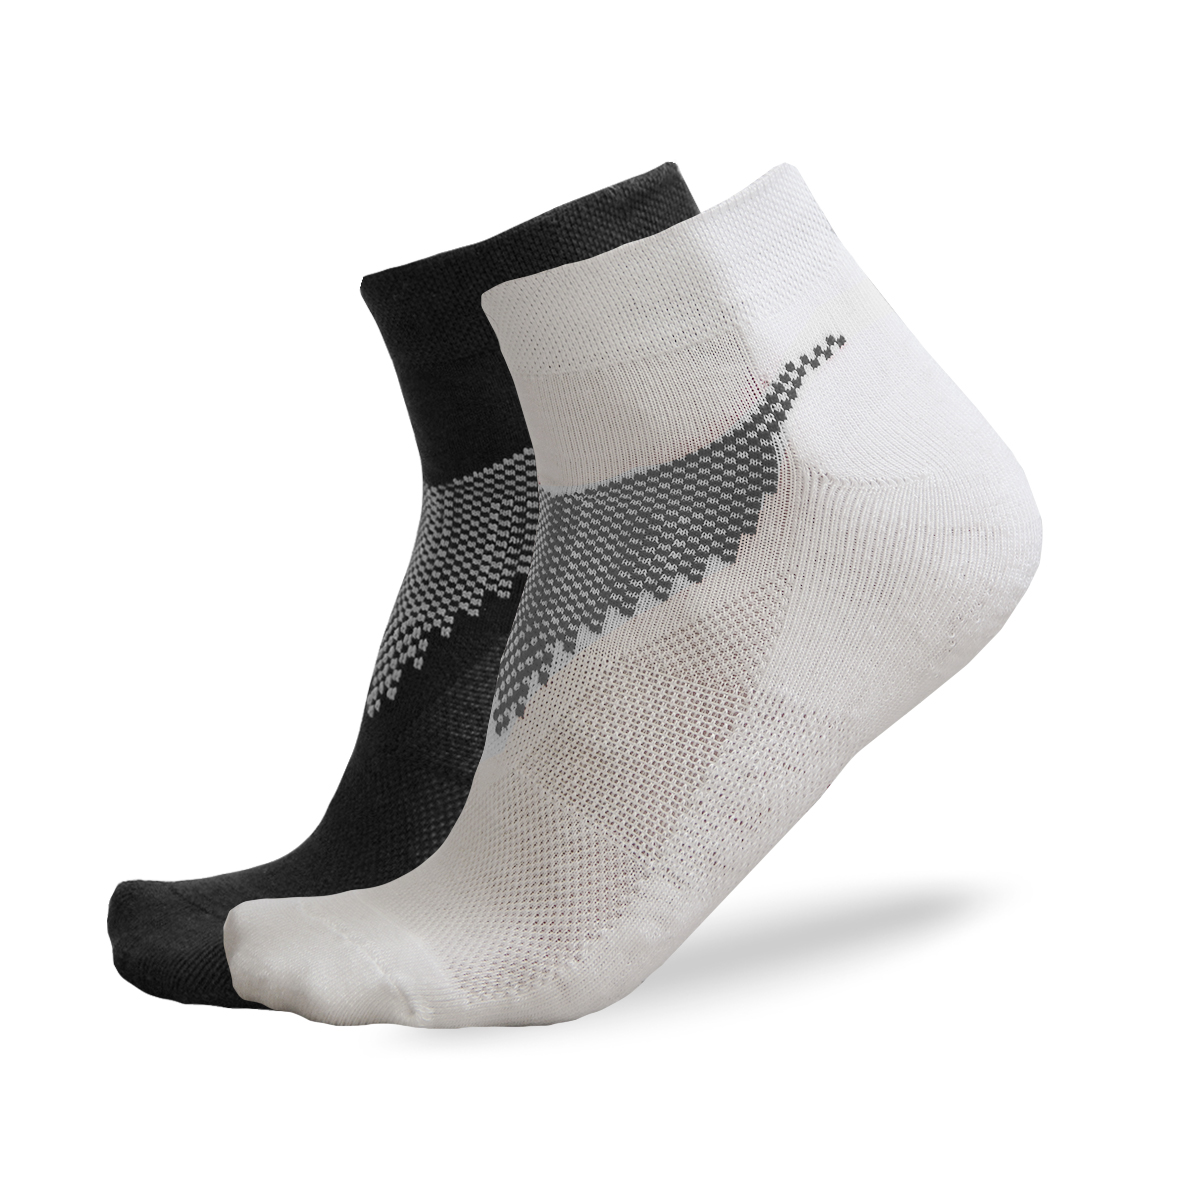 FREEZ ANCLE SOCKS 2-pack black+white 39-42